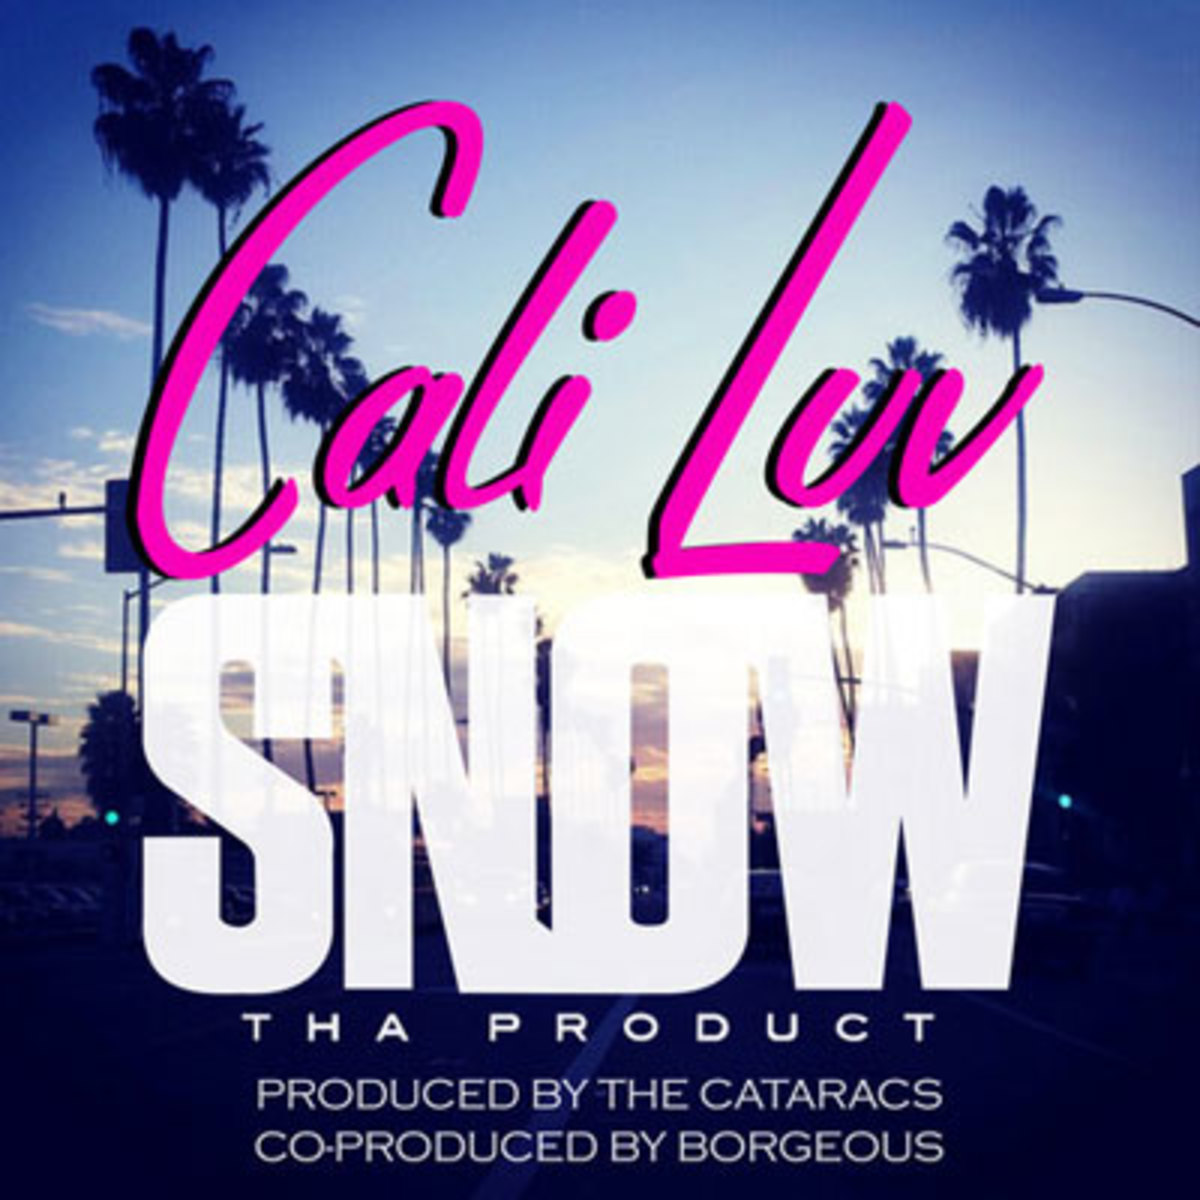 snowthaproduct-calilove.jpg